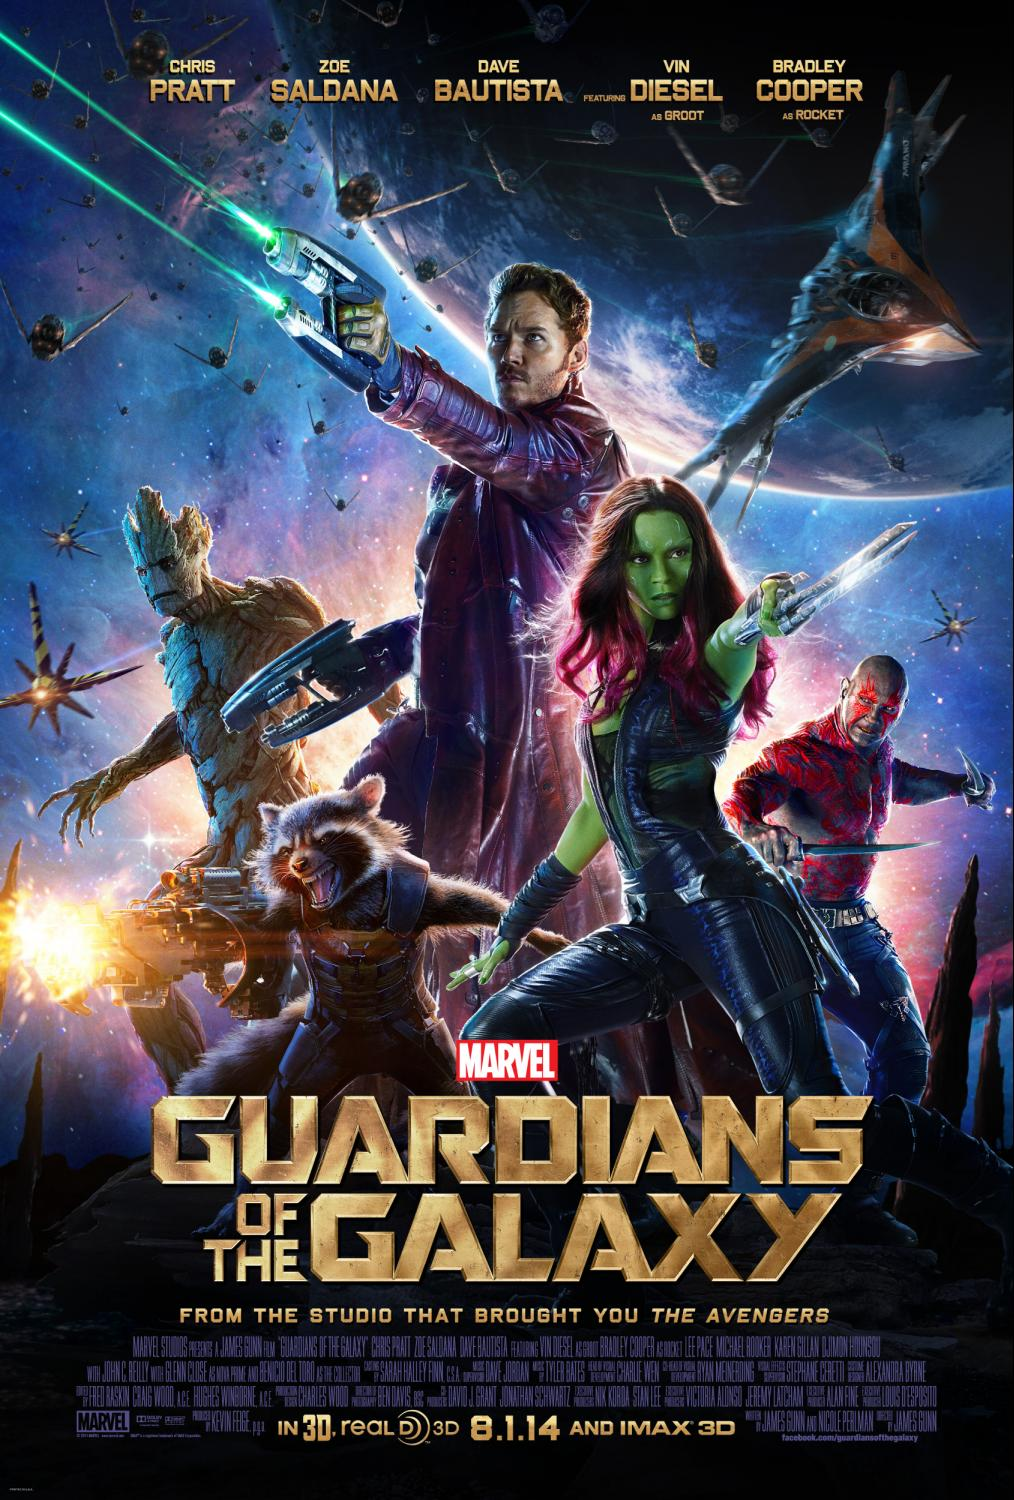 Are you ready for MARVEL'S GUARDIANS OF THE GALAXY Character Posters?